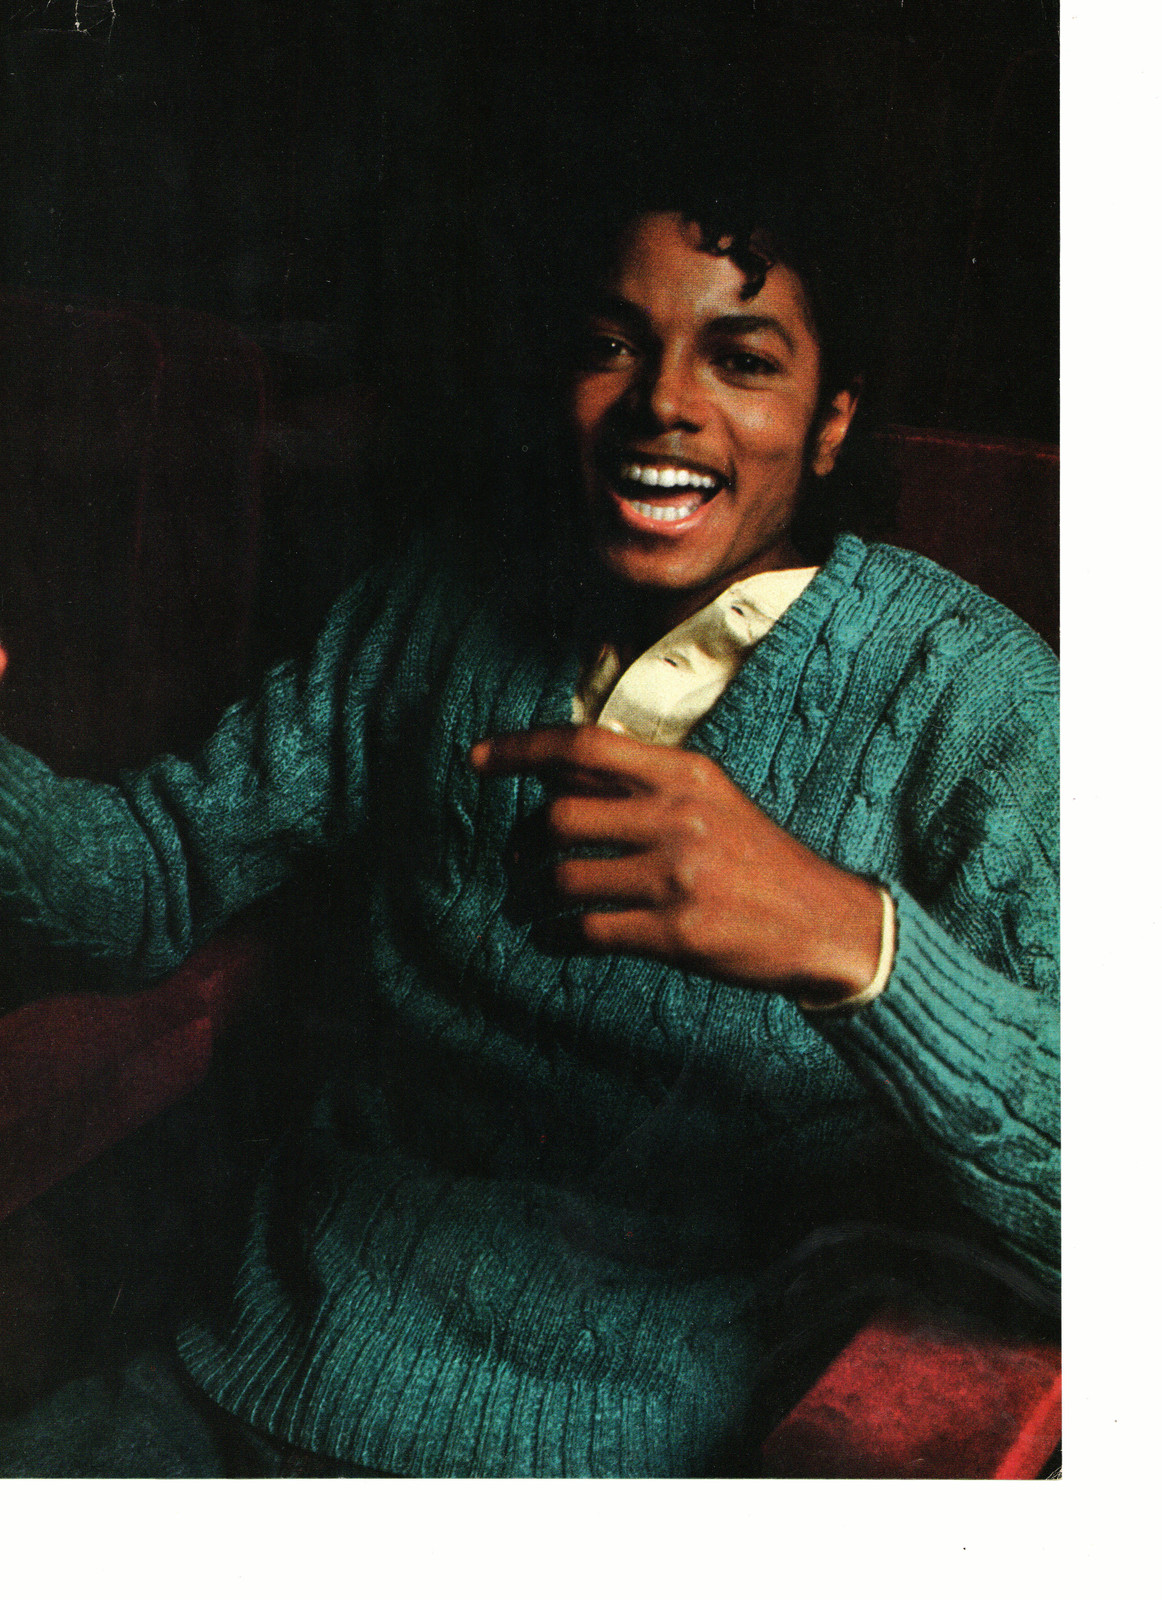 Michael Jackson teen magazine pinup clipping blue sweater laughing hard